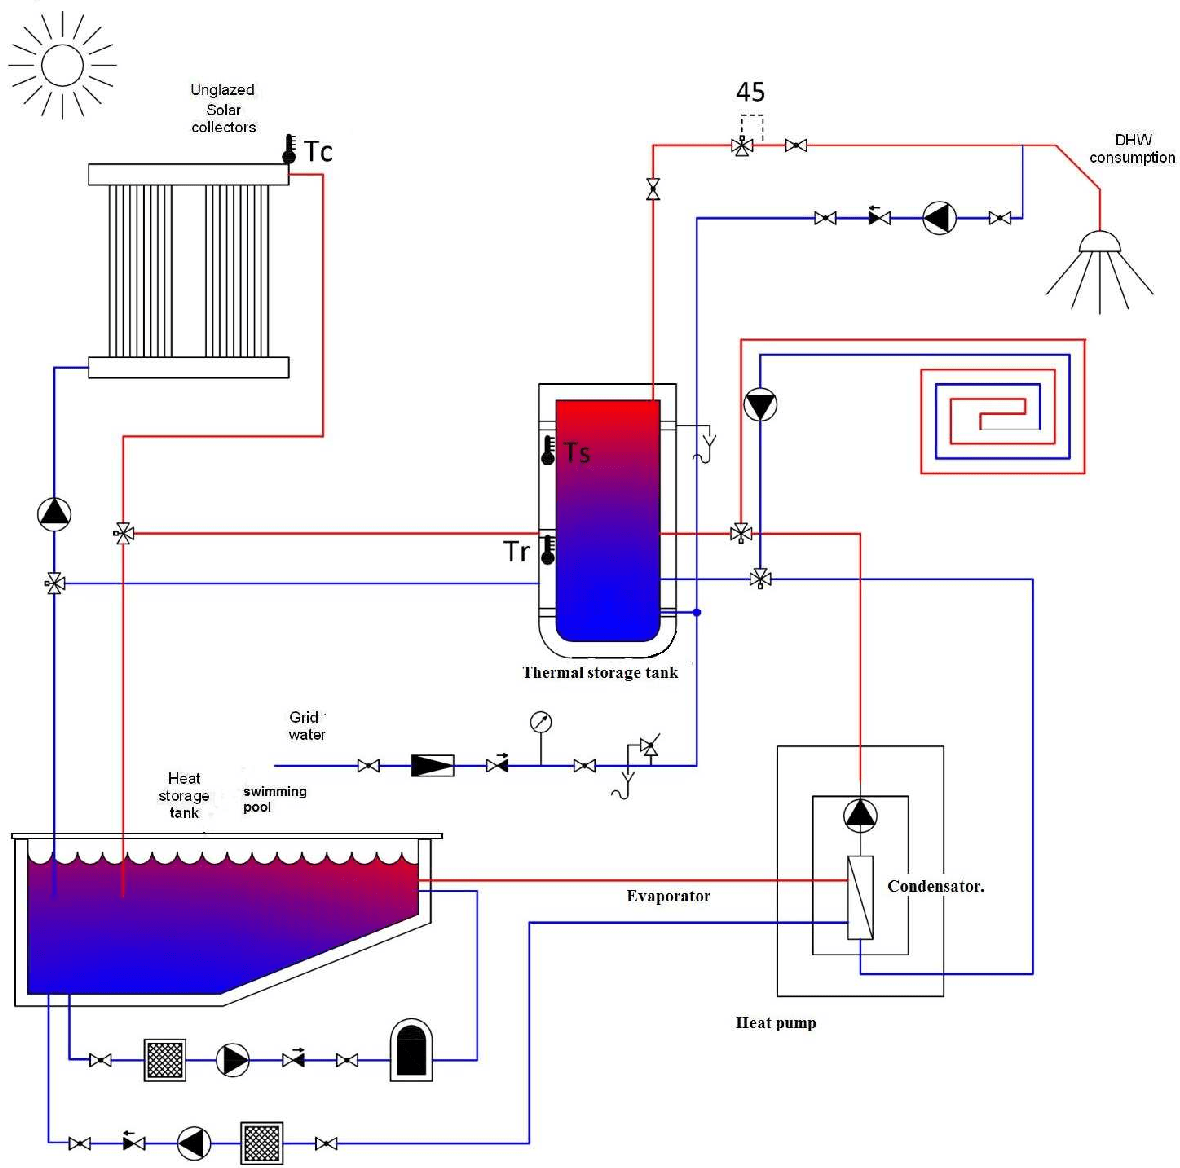 hight resolution of 3 schematic diagram of the low cost solar thermal contribution system with a